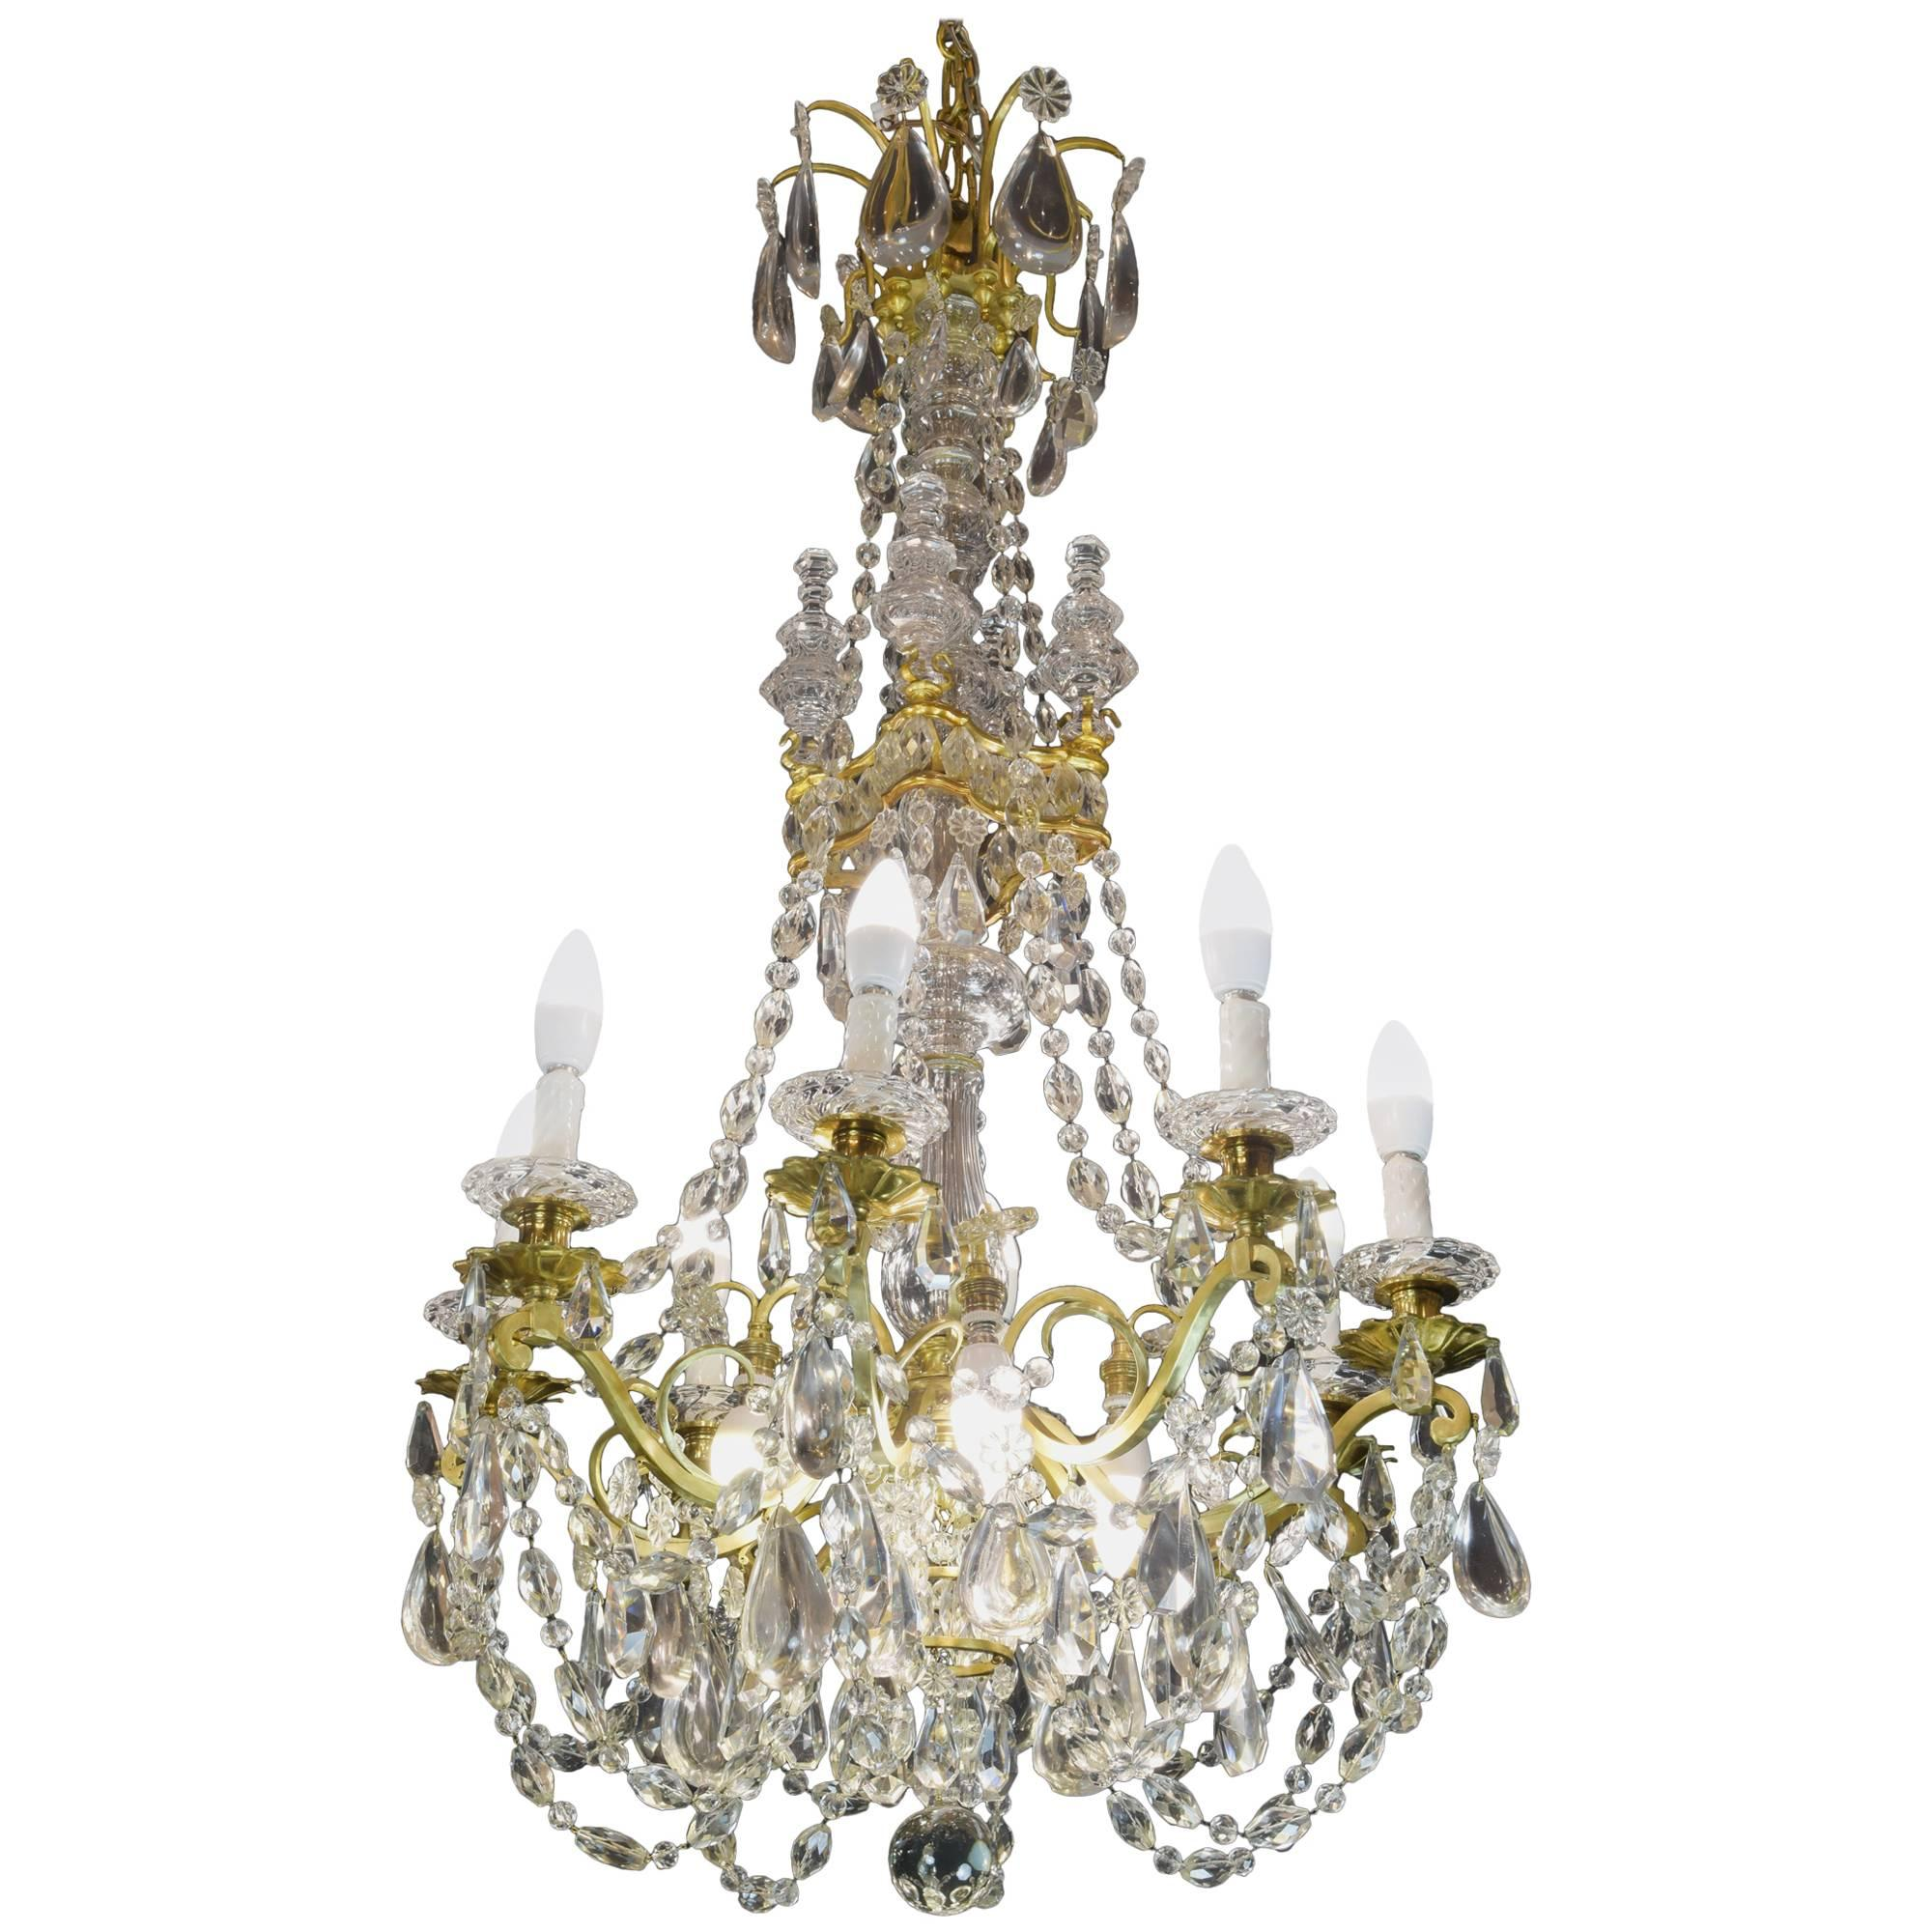 Baccarat Signed Chandelier Glass and Gilt Bronze, 19th Century